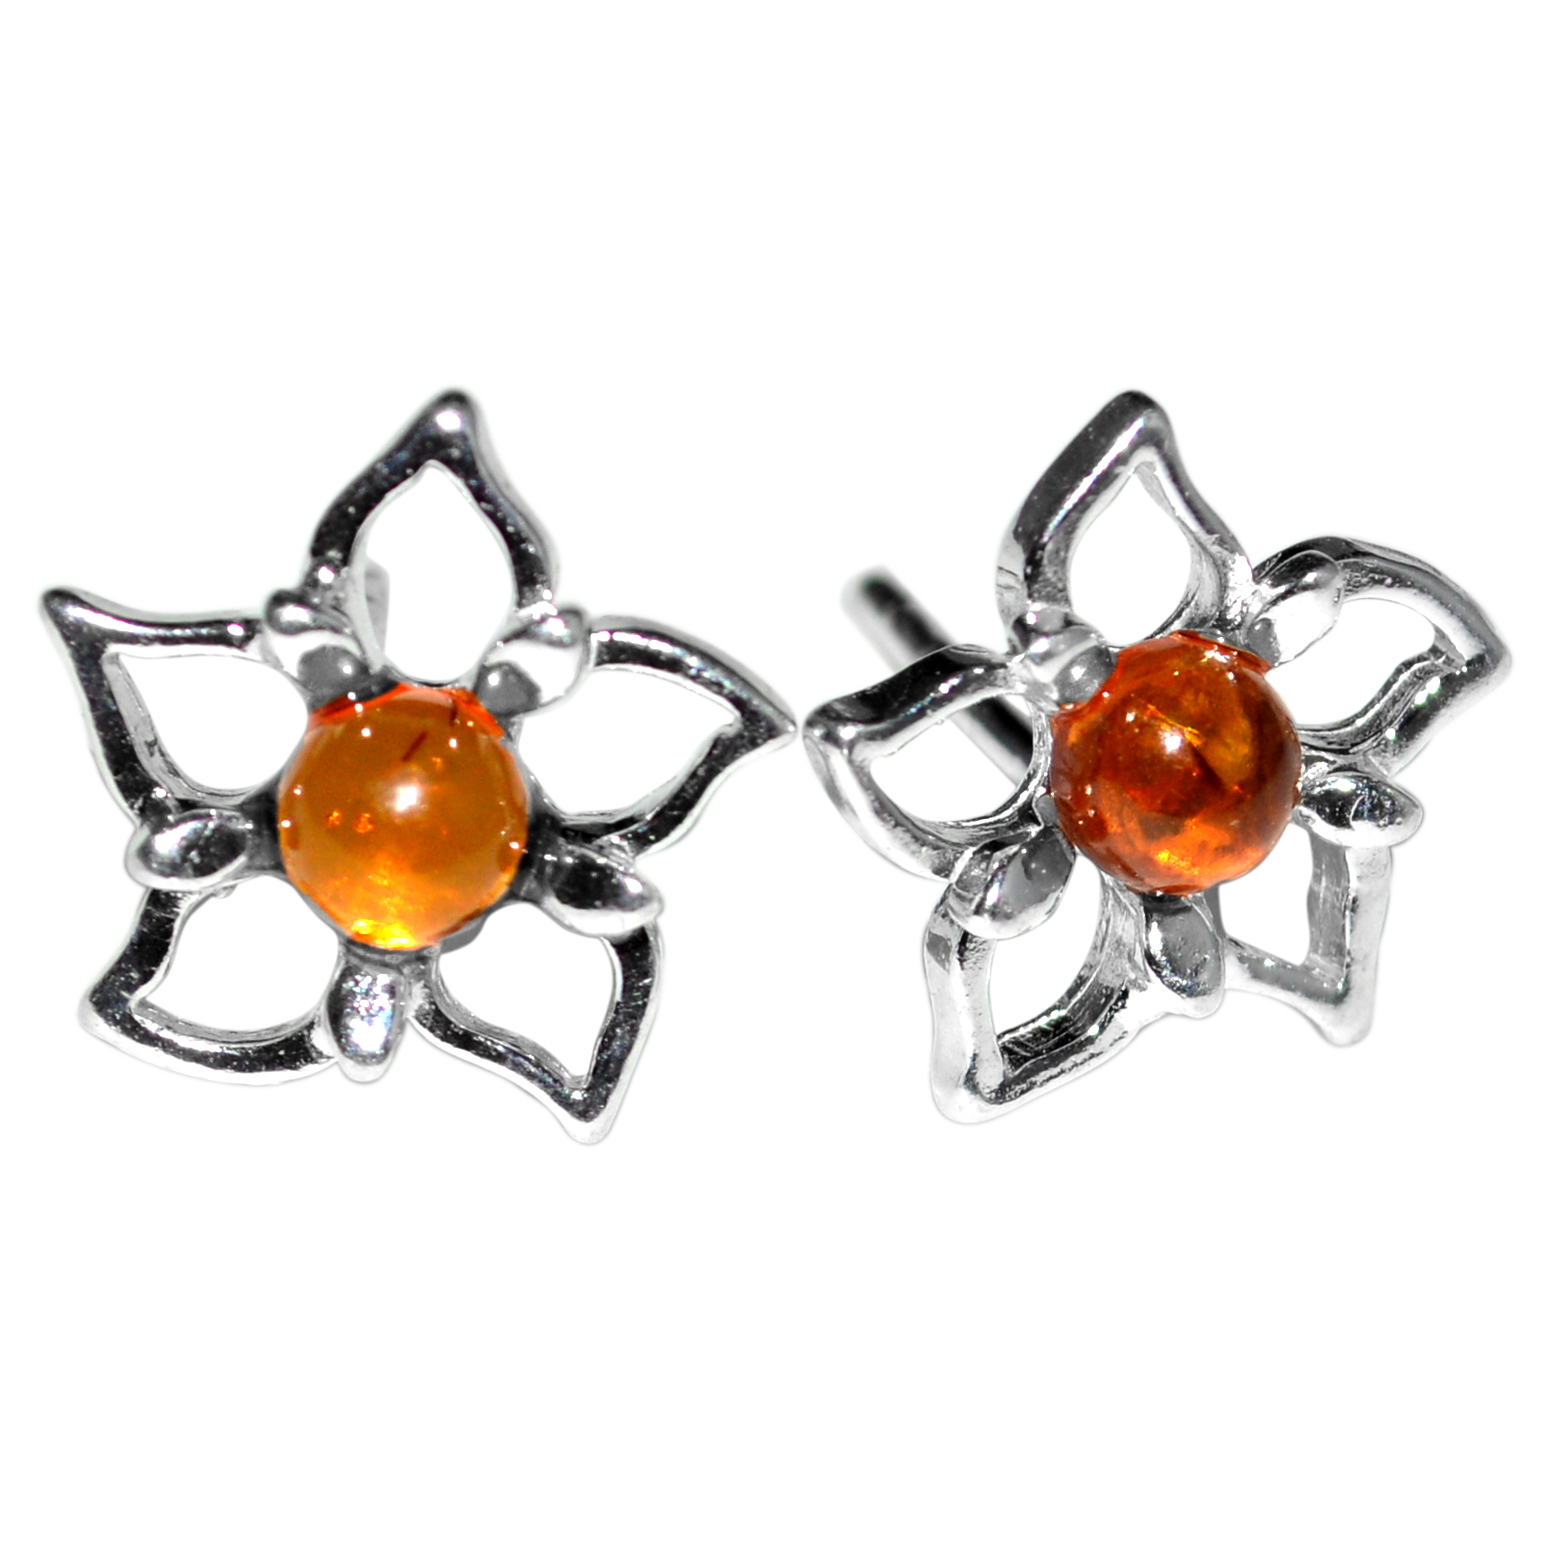 1.66g Authentic Baltic Amber 925 Sterling Silver Earrings Jewelry A8487